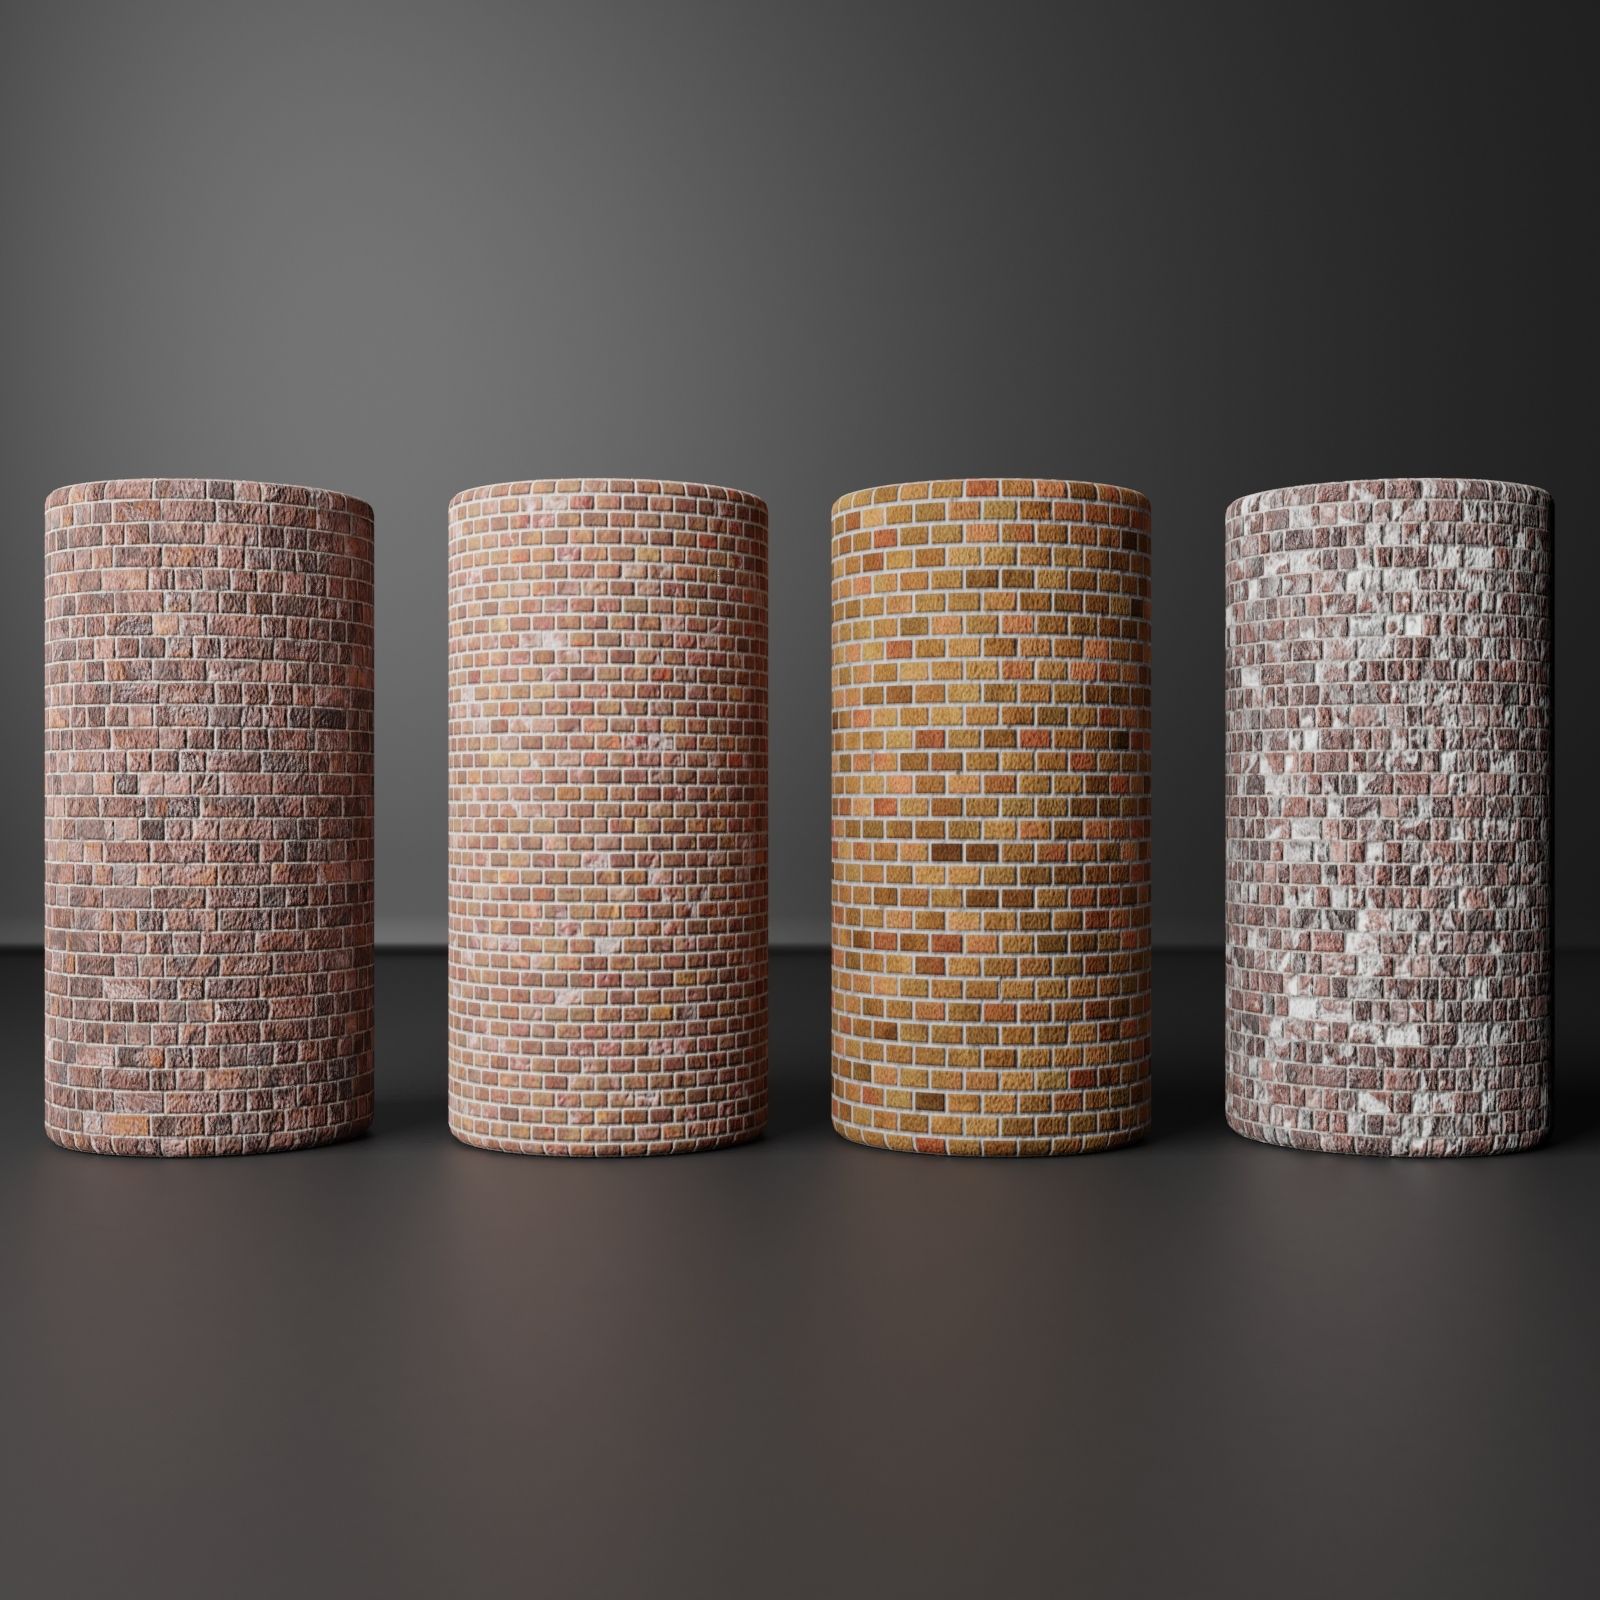 PBR Masonry Textures - Extended License